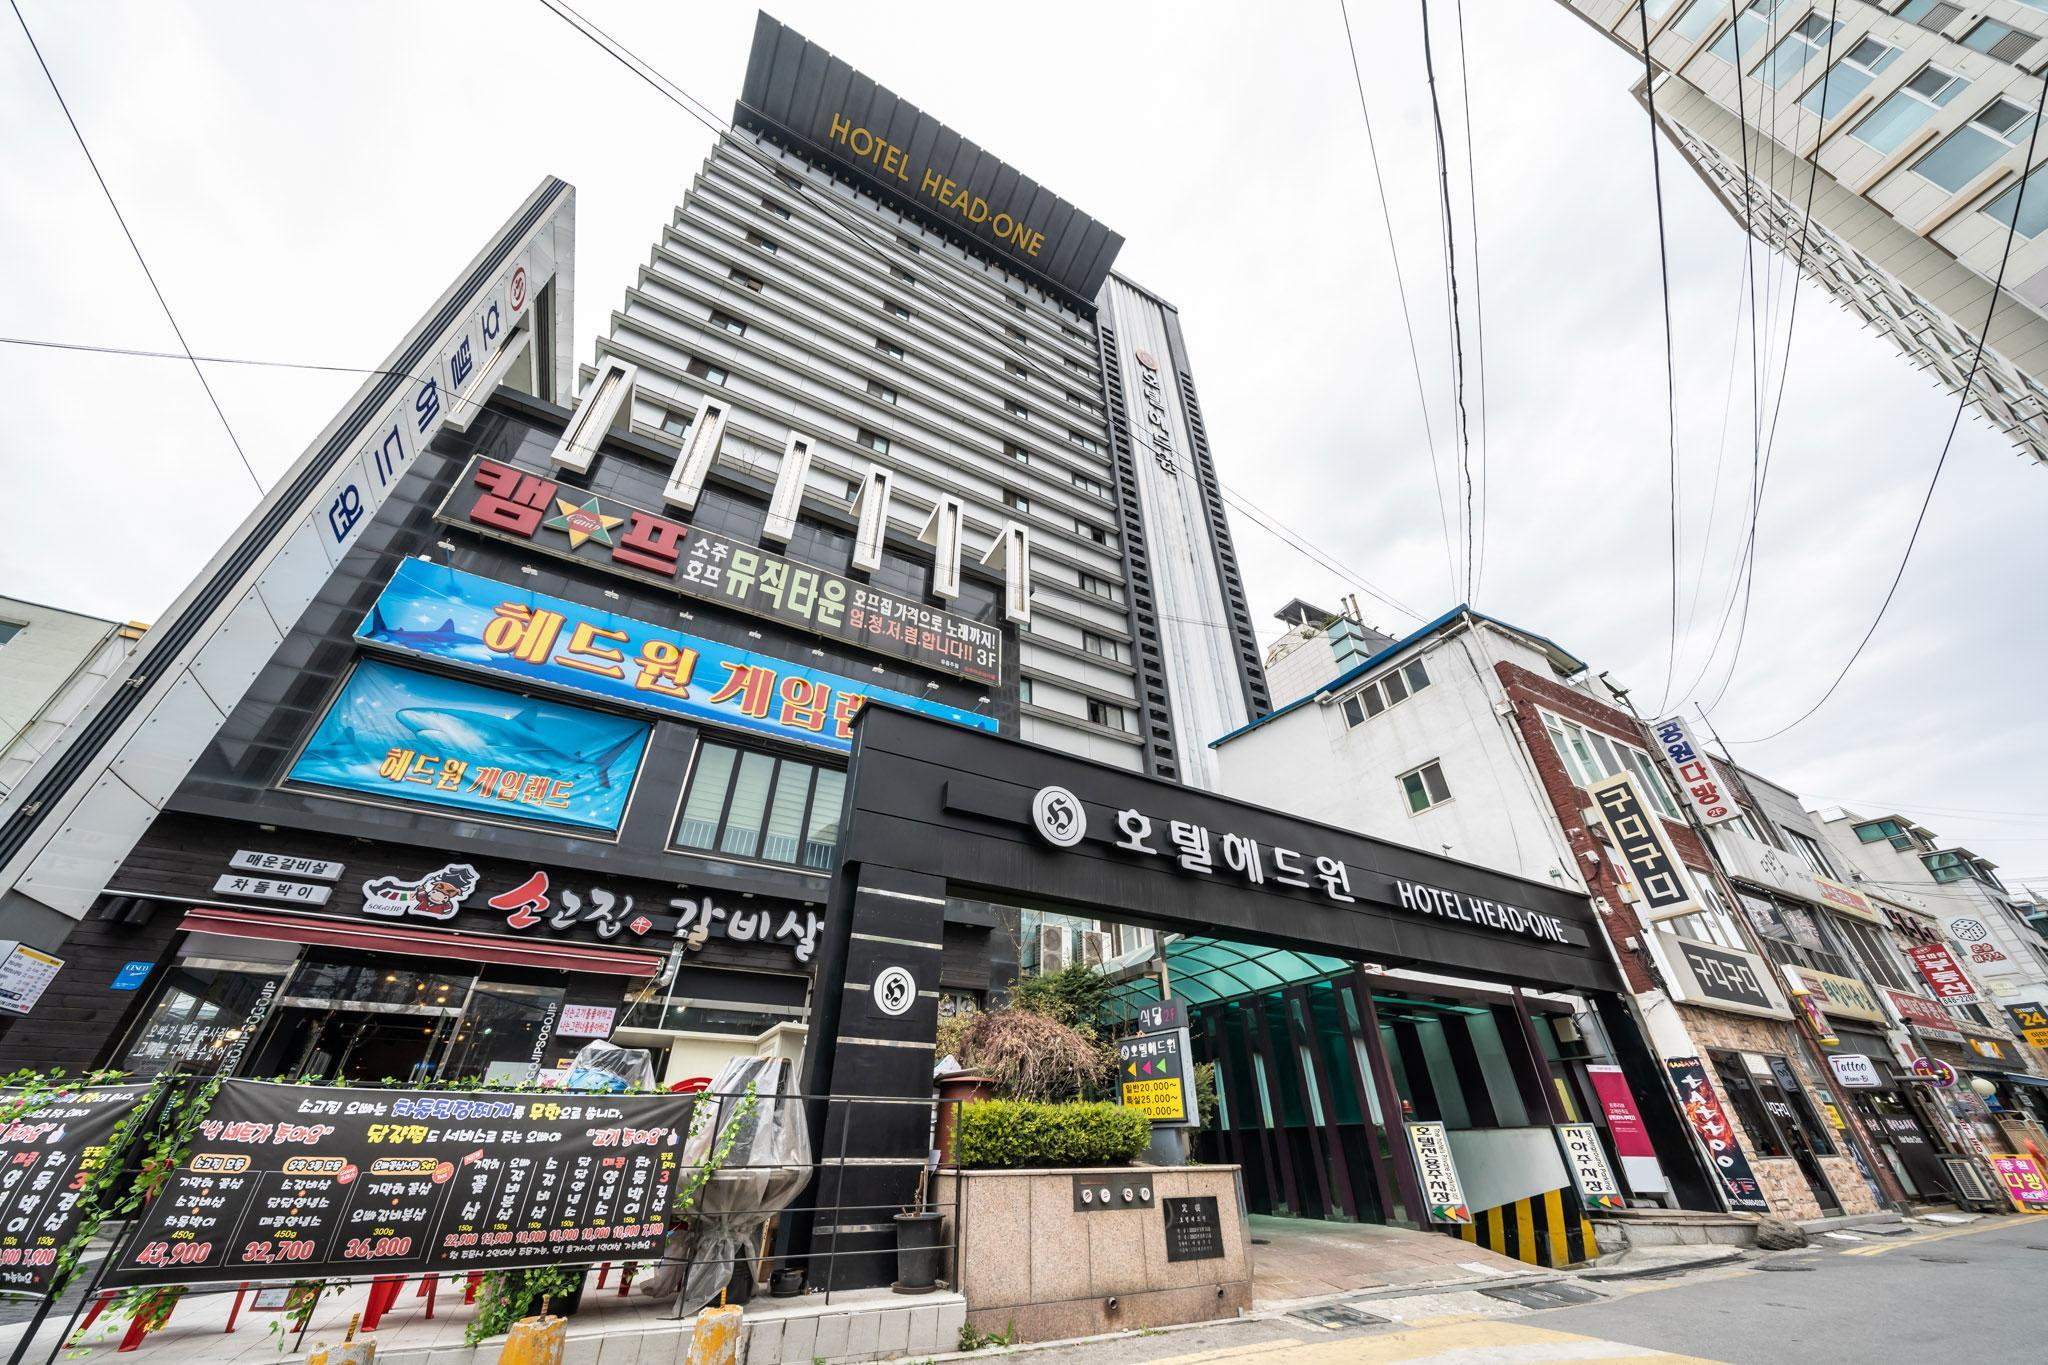 hotel head one uijeongbu si south korea photos room rates rh agoda com